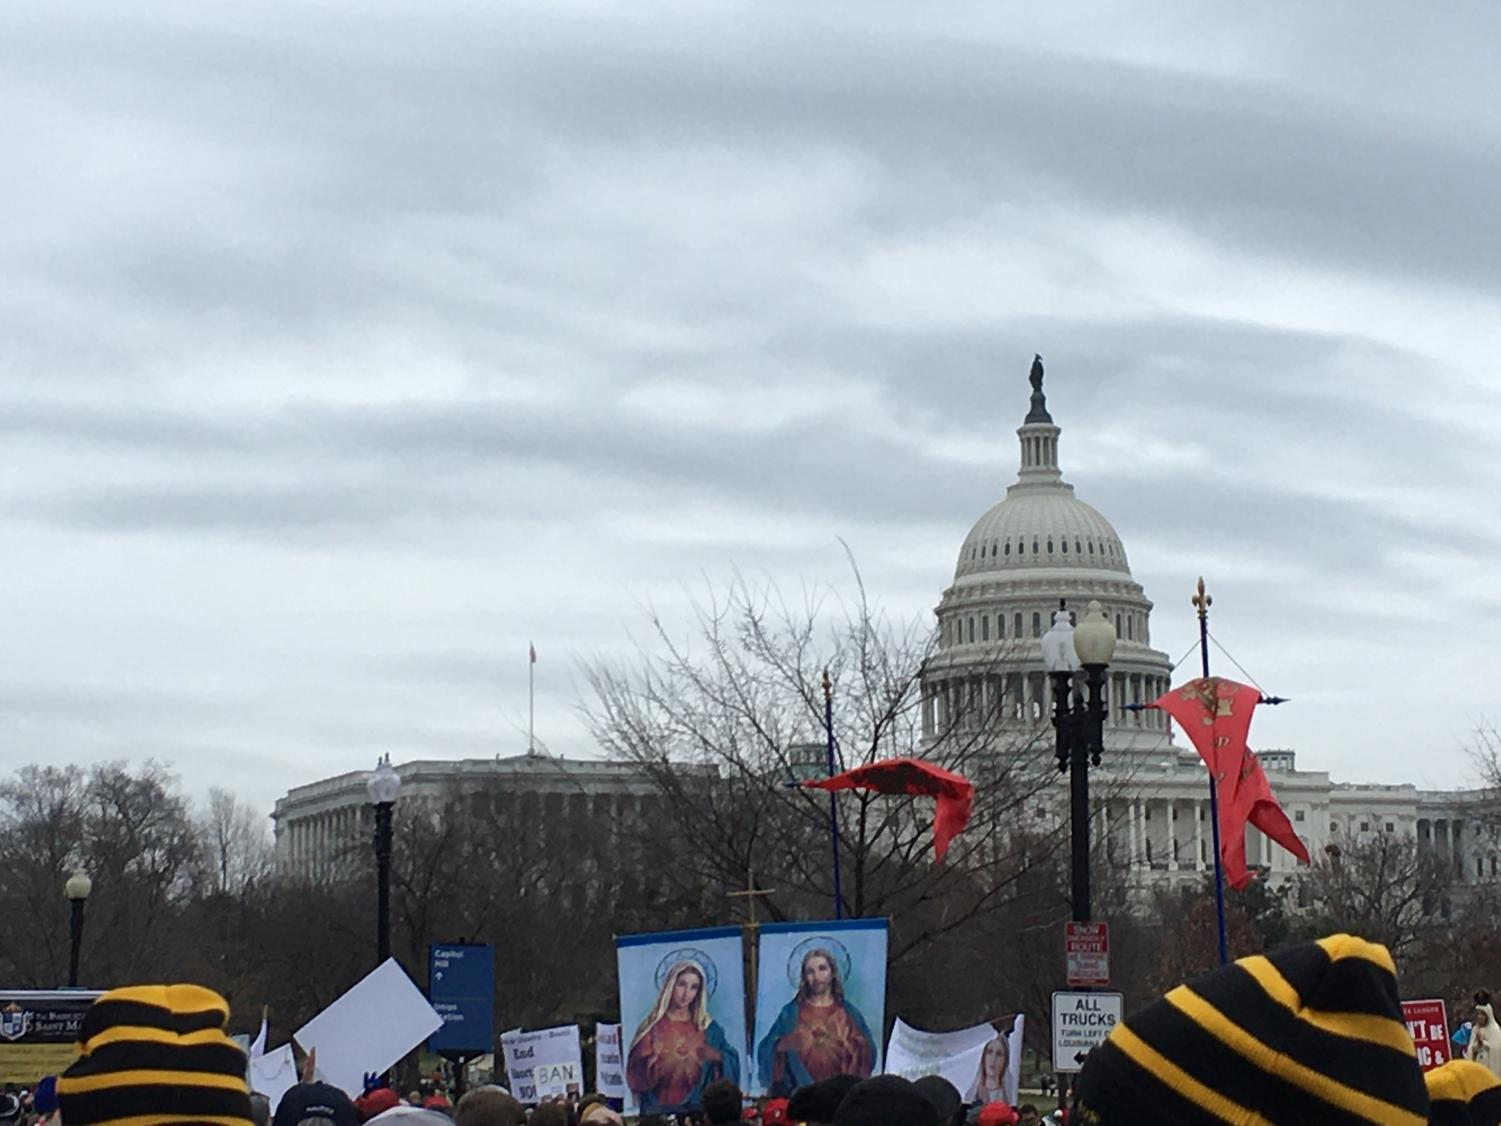 March for Life in D.C. 2020